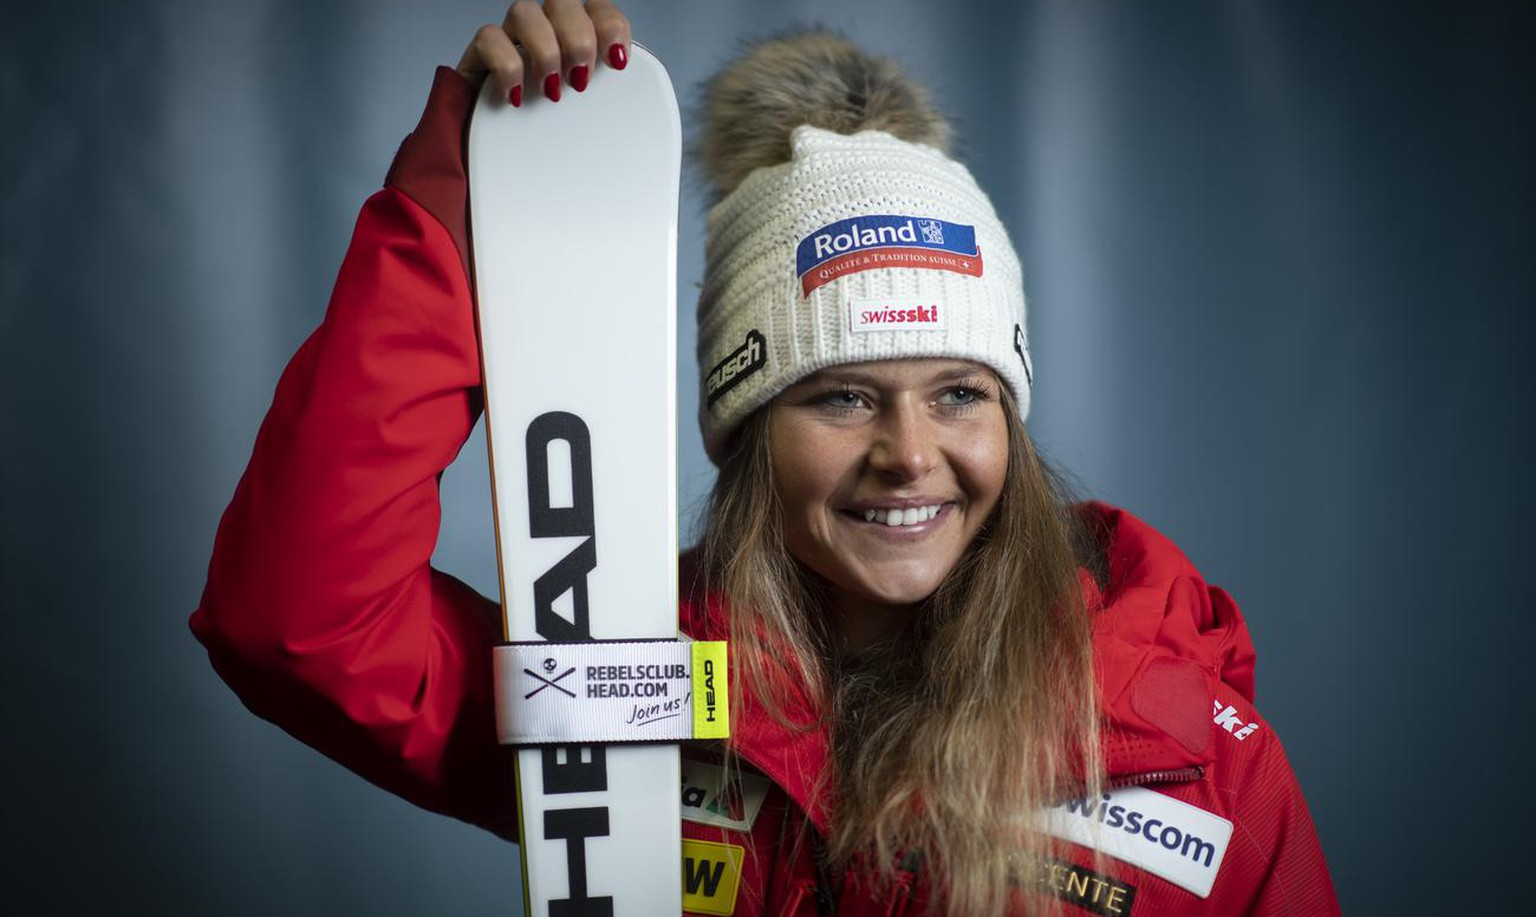 Corinne Suter of Switzerland, pictured at a press event in an underground parking lot at the FIS Alpine Ski World Cup season in Soelden, Austria, on Friday, October 16, 2020. The Alpine Skiing World Cup season 2020/2021 will be opened this weekend in Soelden, the traditional start of the FIS Ski World Cup. (KEYSTONE/Gian Ehrenzeller)